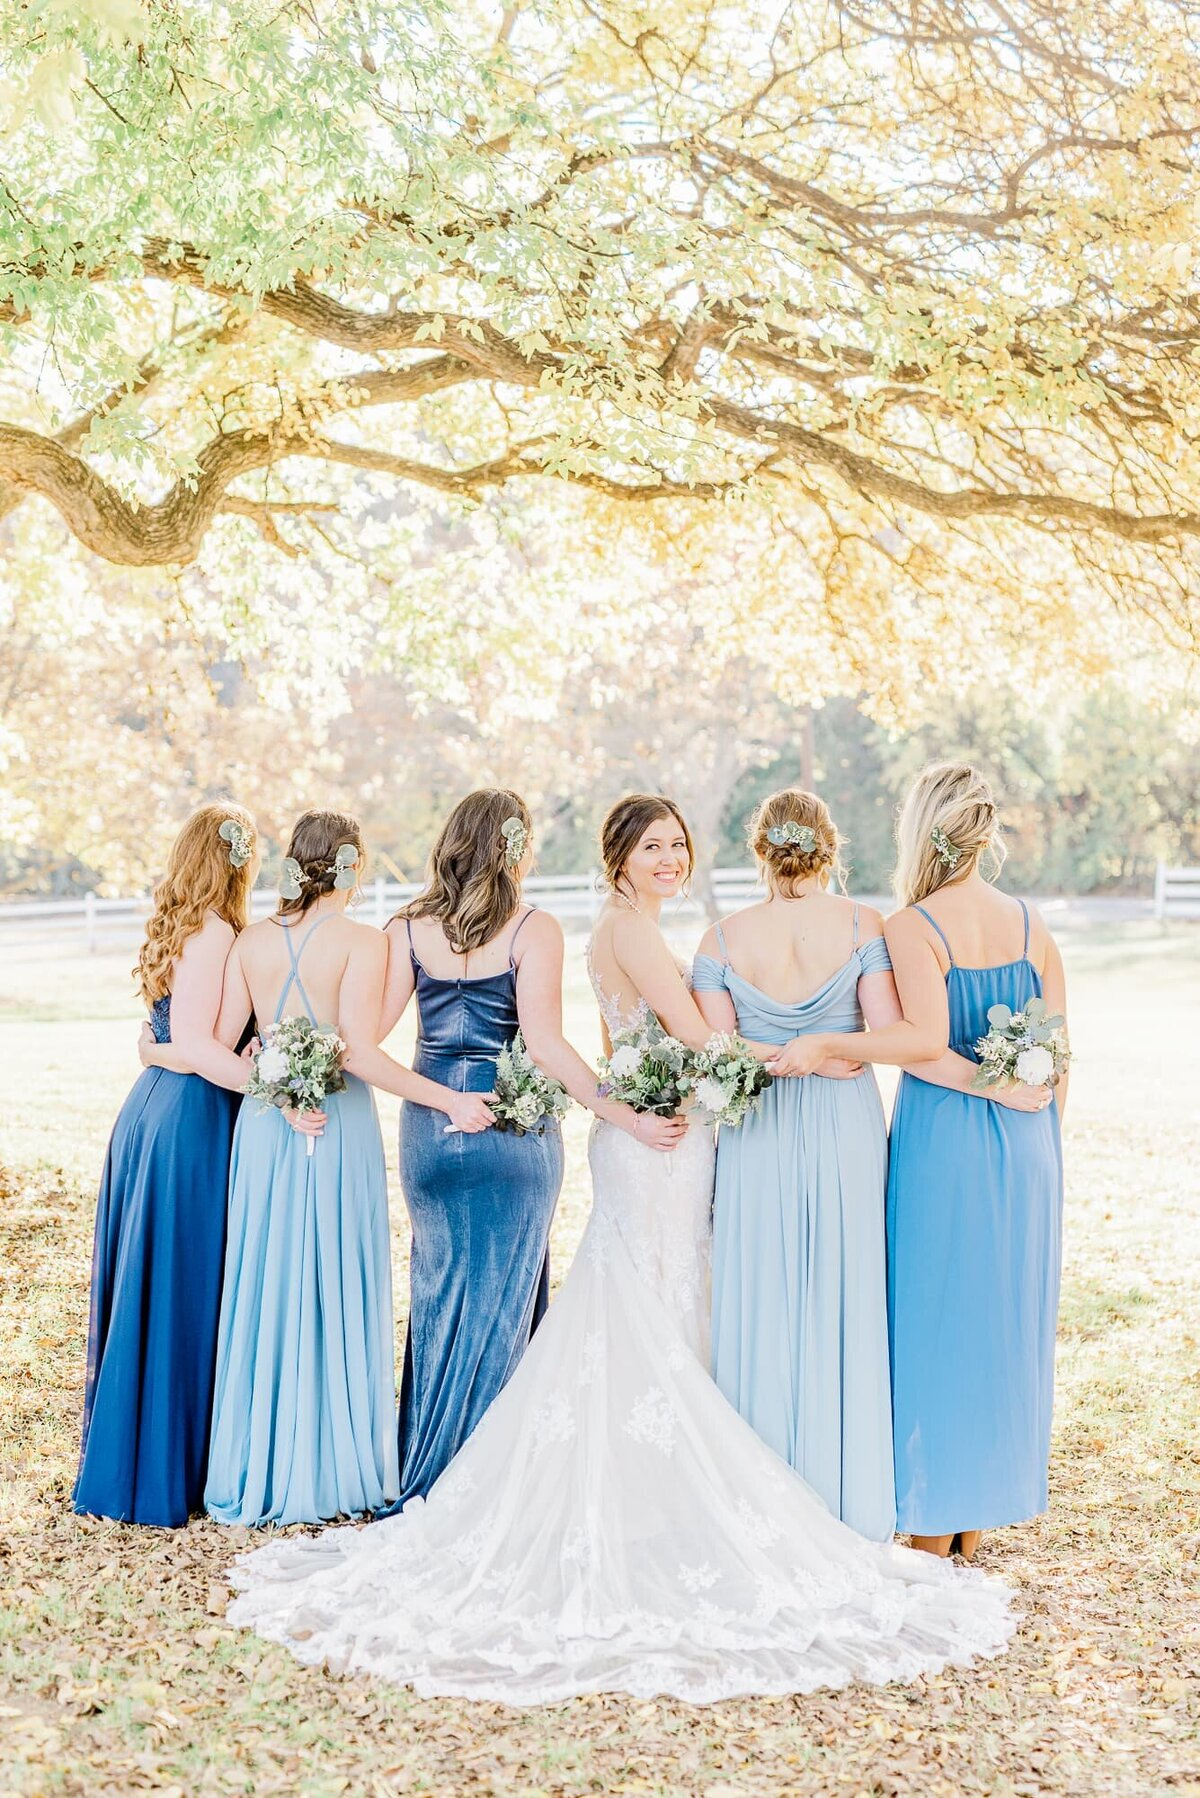 Photograph of bride with bridesmaids